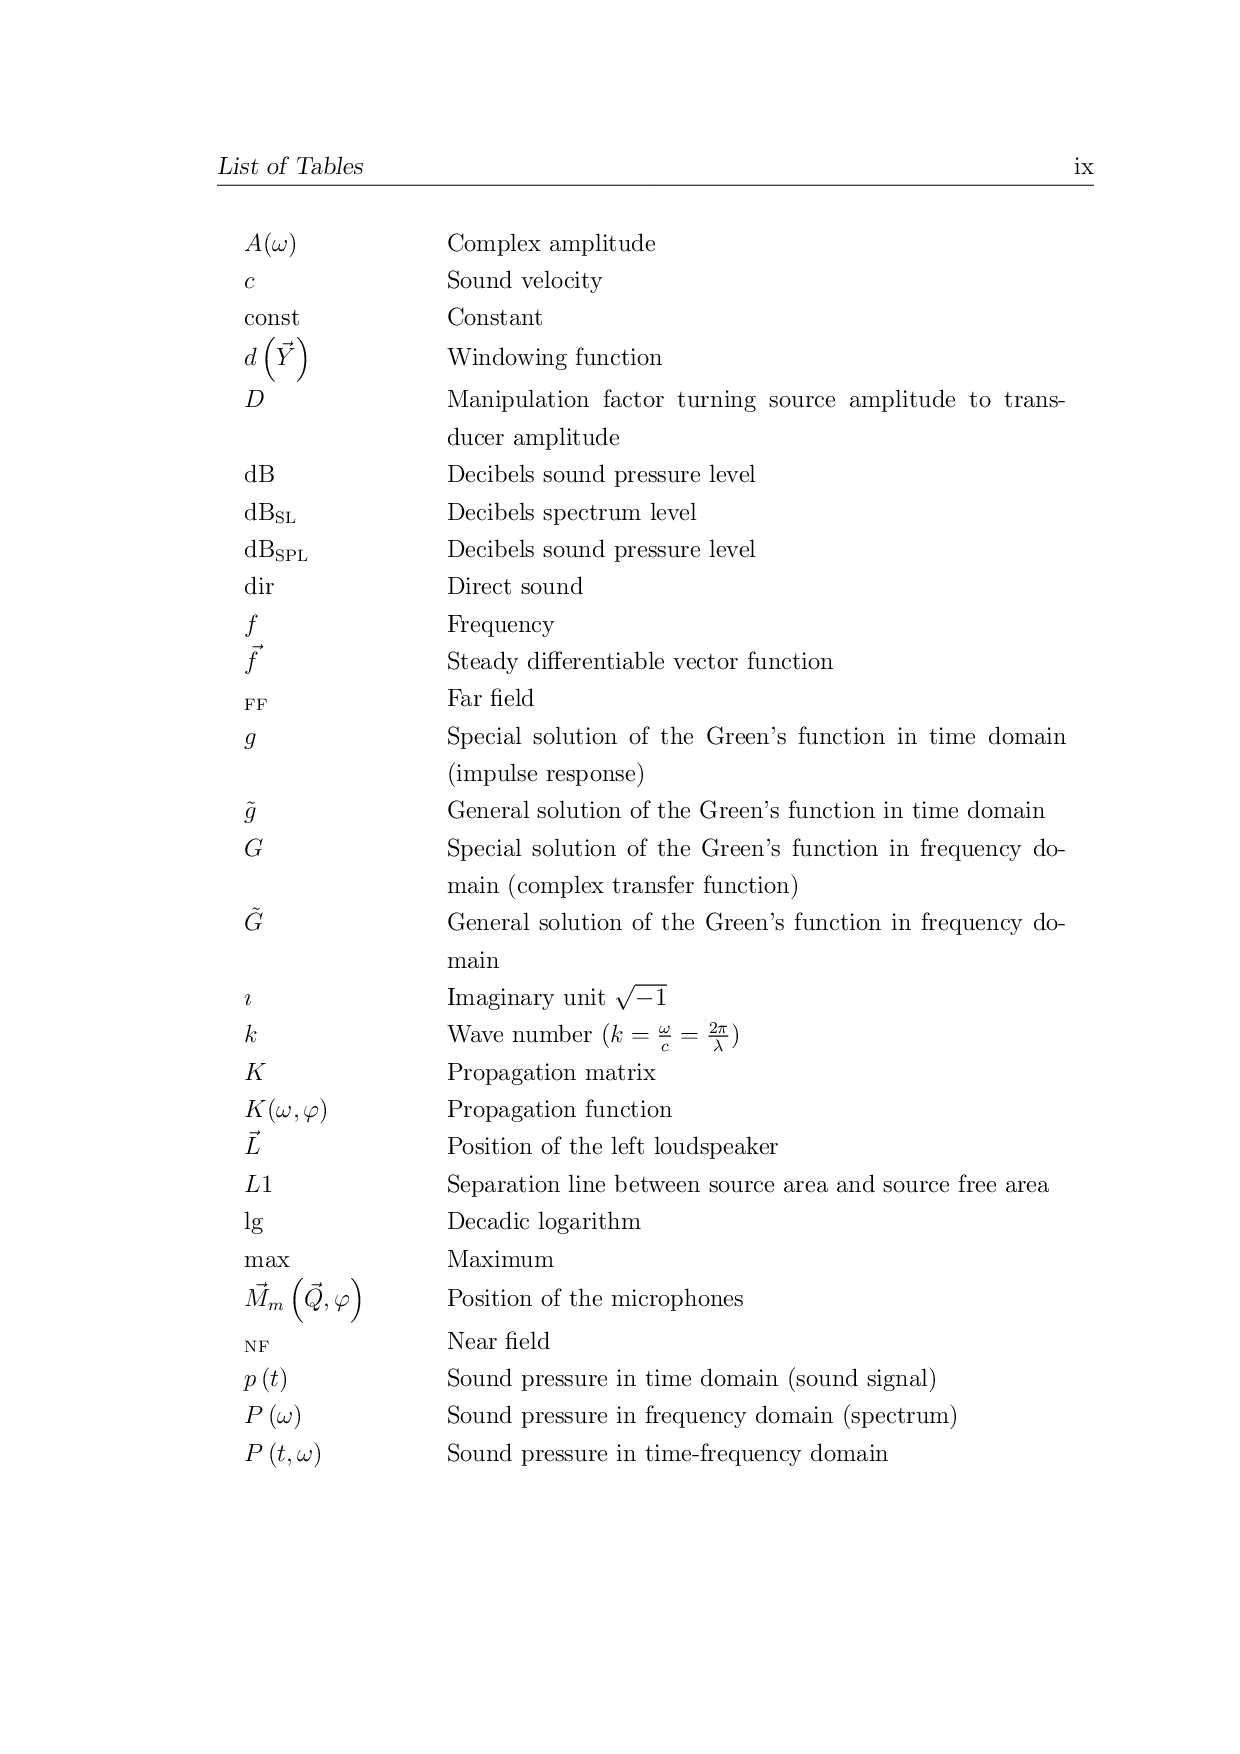 implementation of the radiation characteristics of musical